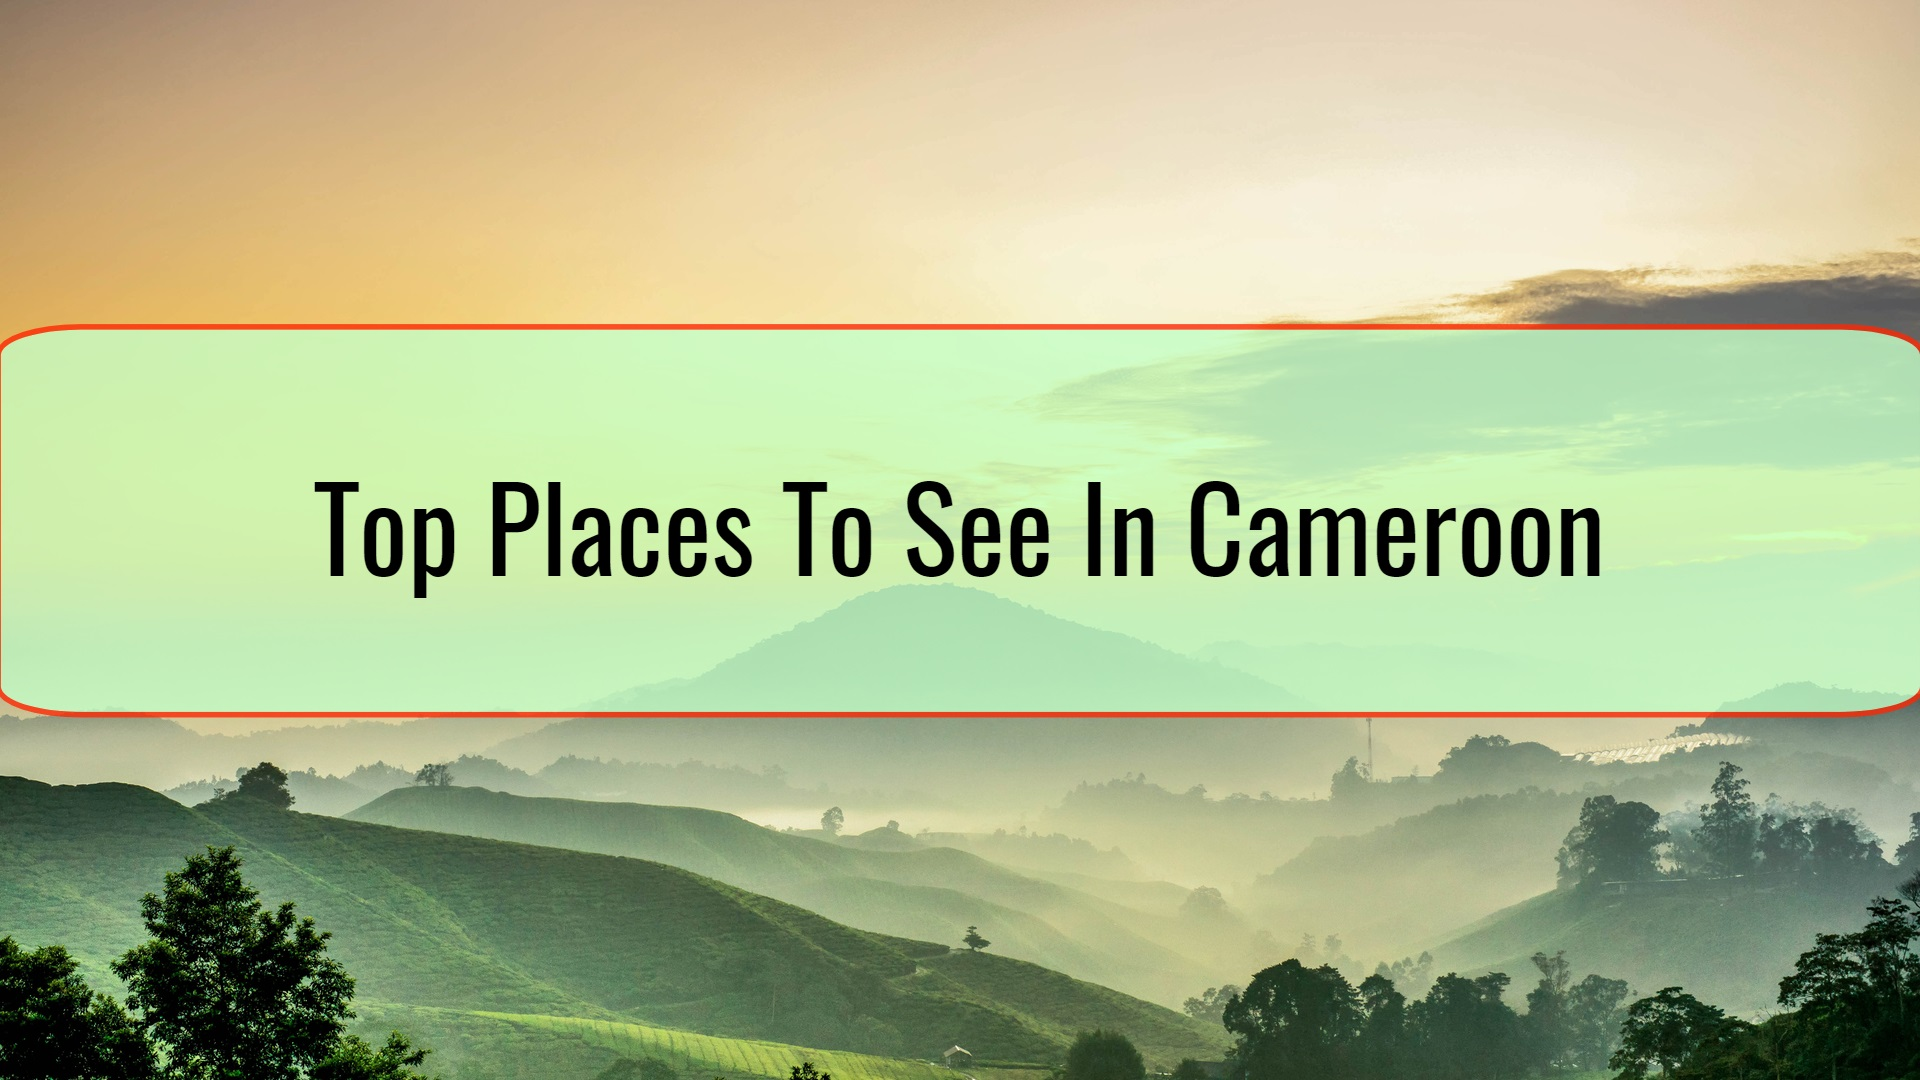 Top Places To See In Cameroon